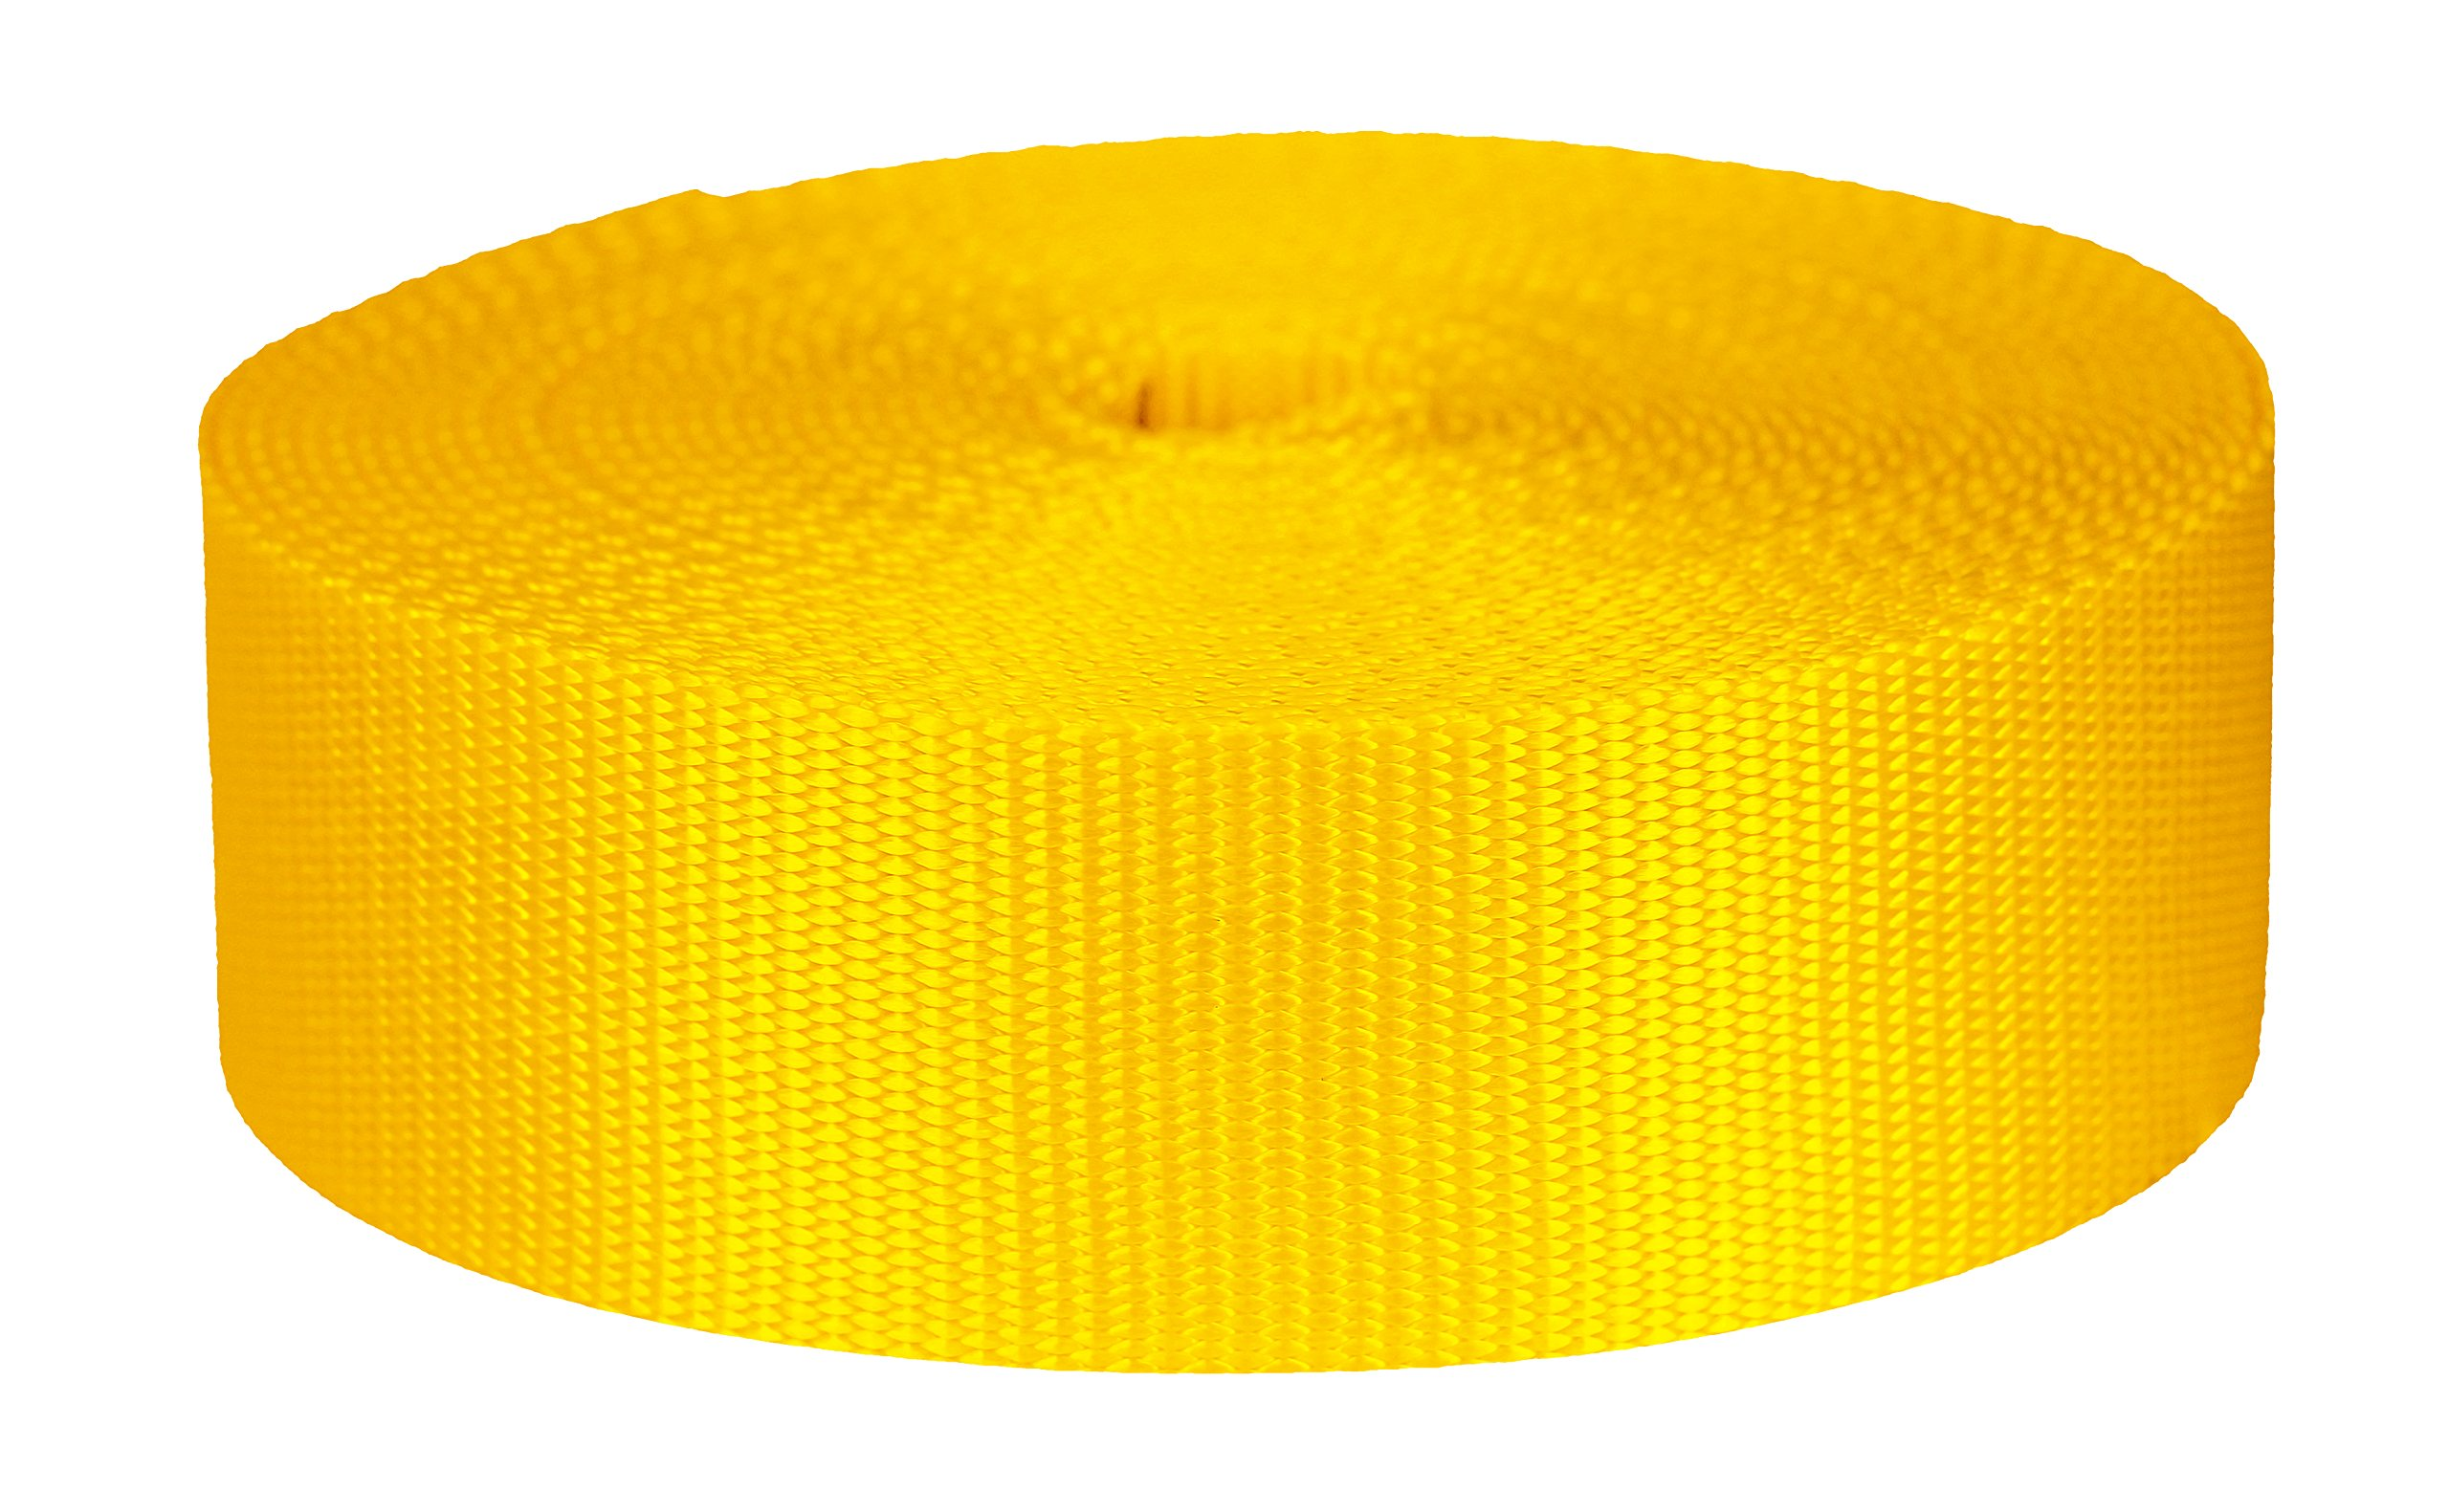 Strapworks Colored Flat Nylon Webbing - Strap For Arts And Crafts, Dog Leashes, Outdoor Activities - 2 Inches x 50 Yards,  Yellow by Strapworks